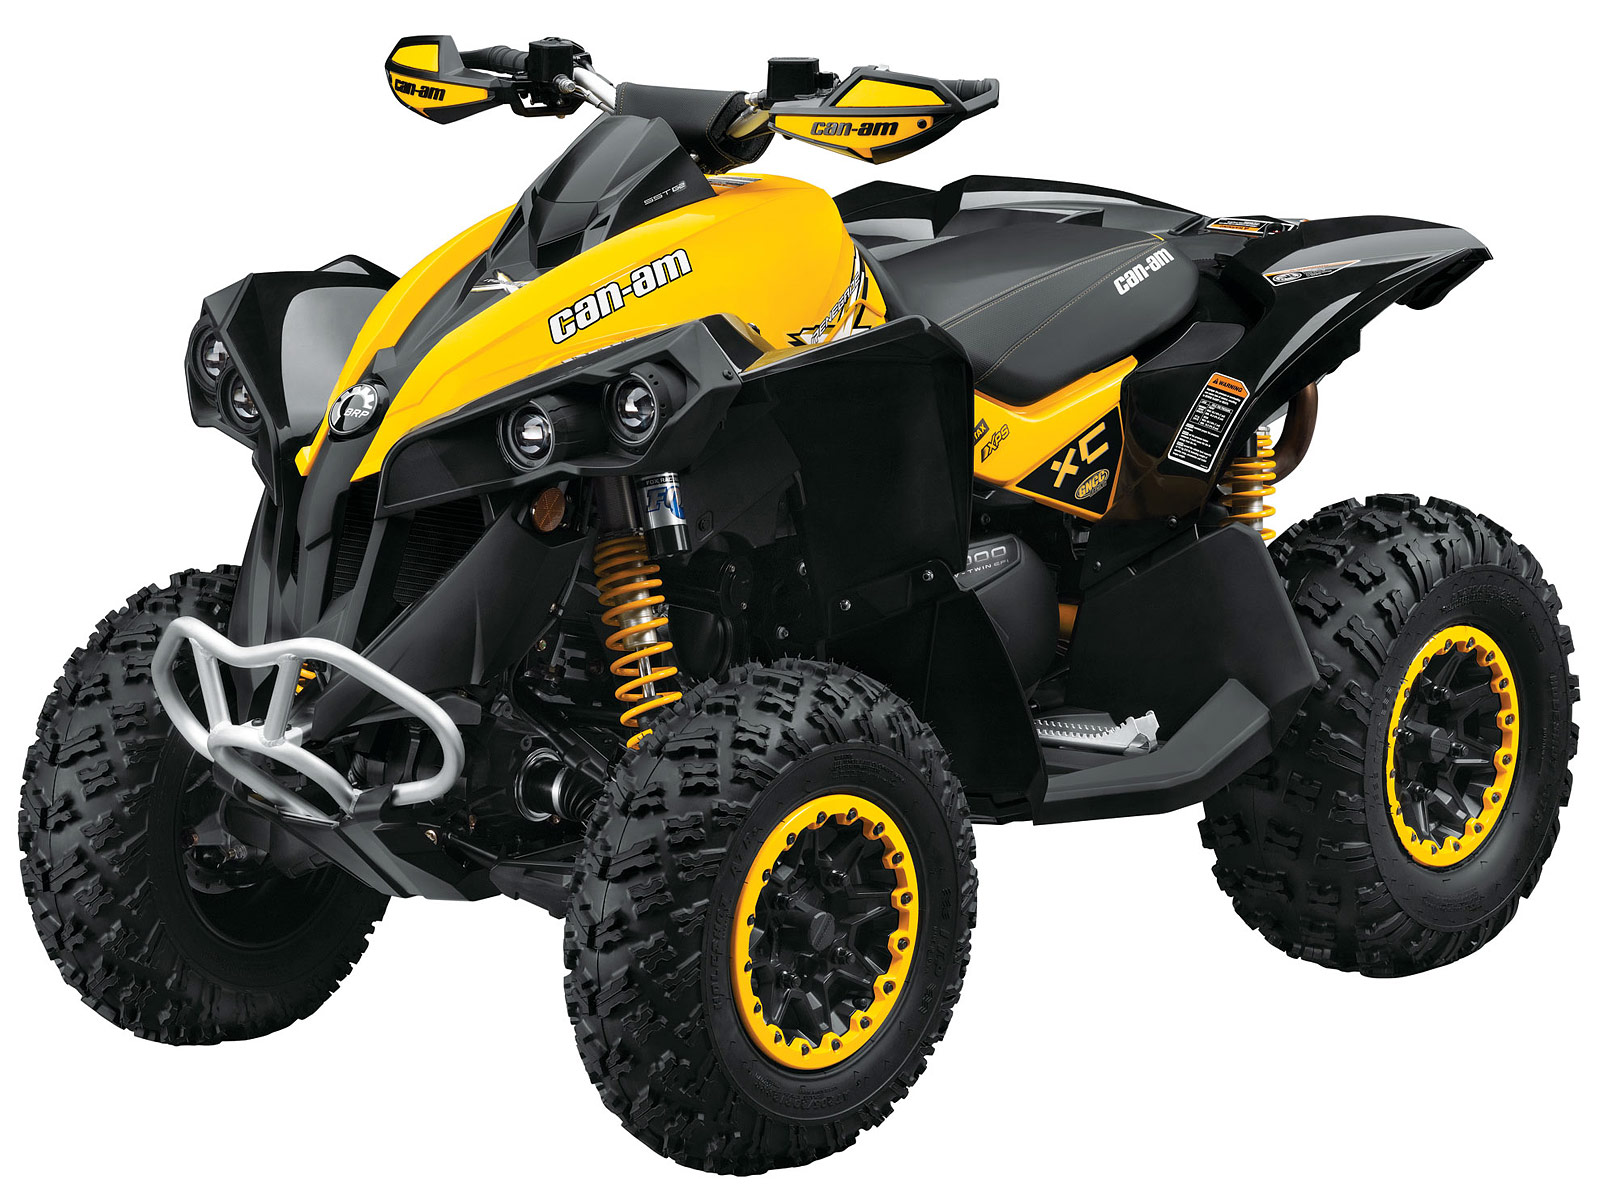 2013 Can Am Renegade 800 >> Usa - Canada Specifications 2013 Can-Am Renegade